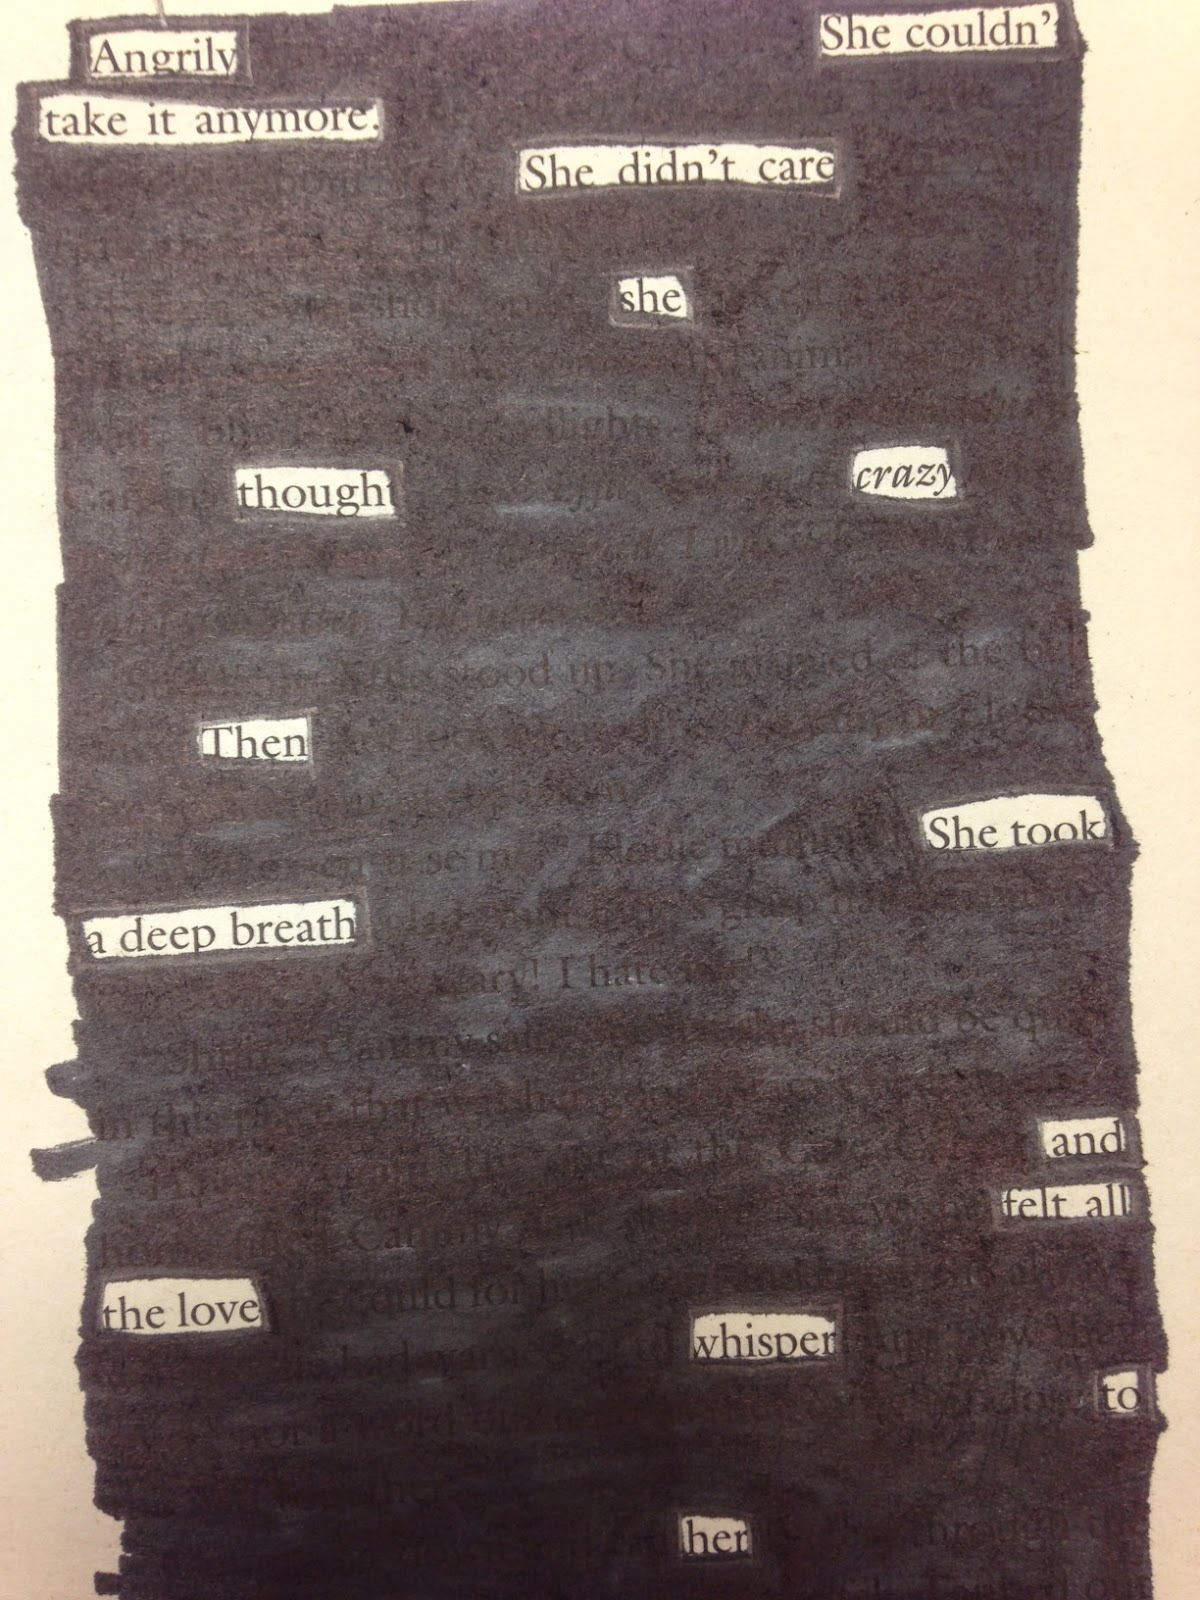 blackout poems. Black Bedroom Furniture Sets. Home Design Ideas